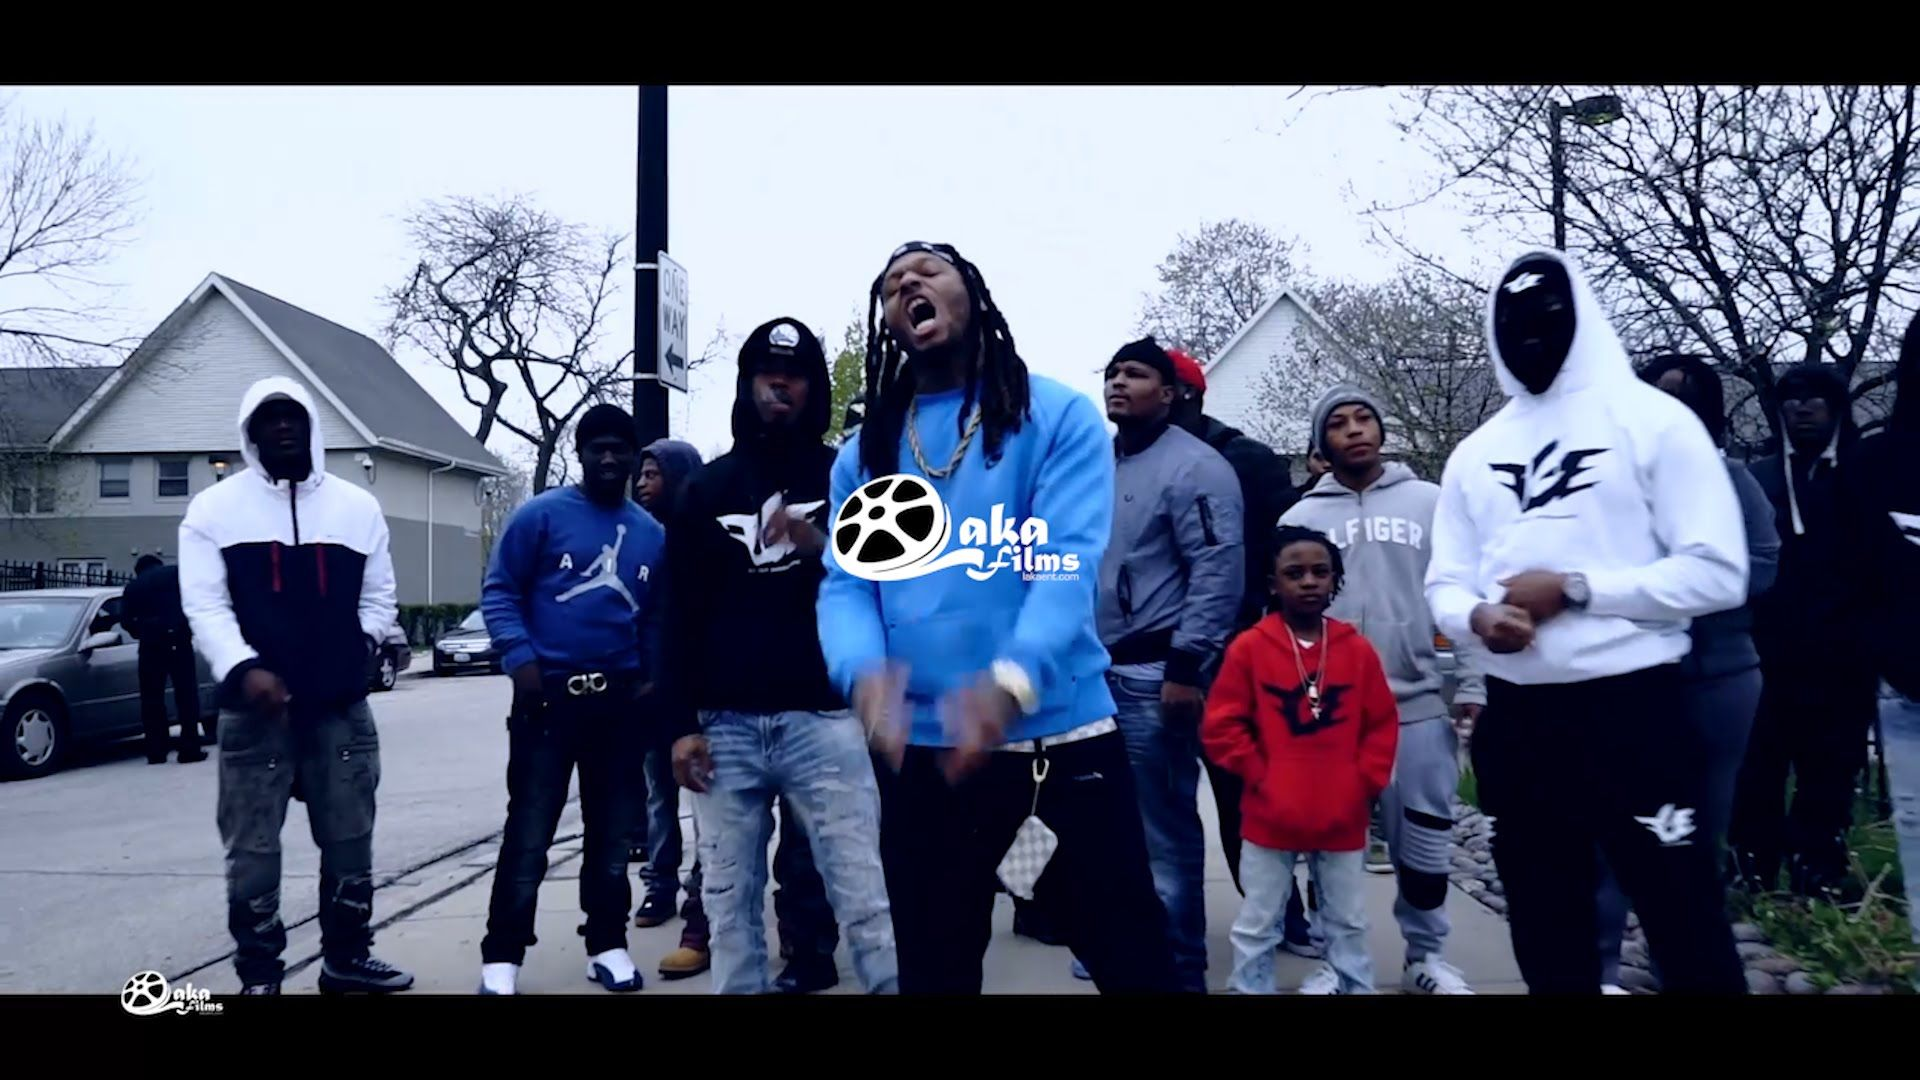 Montana Of 300 Panda Remix Shot By Lakafilms Remix